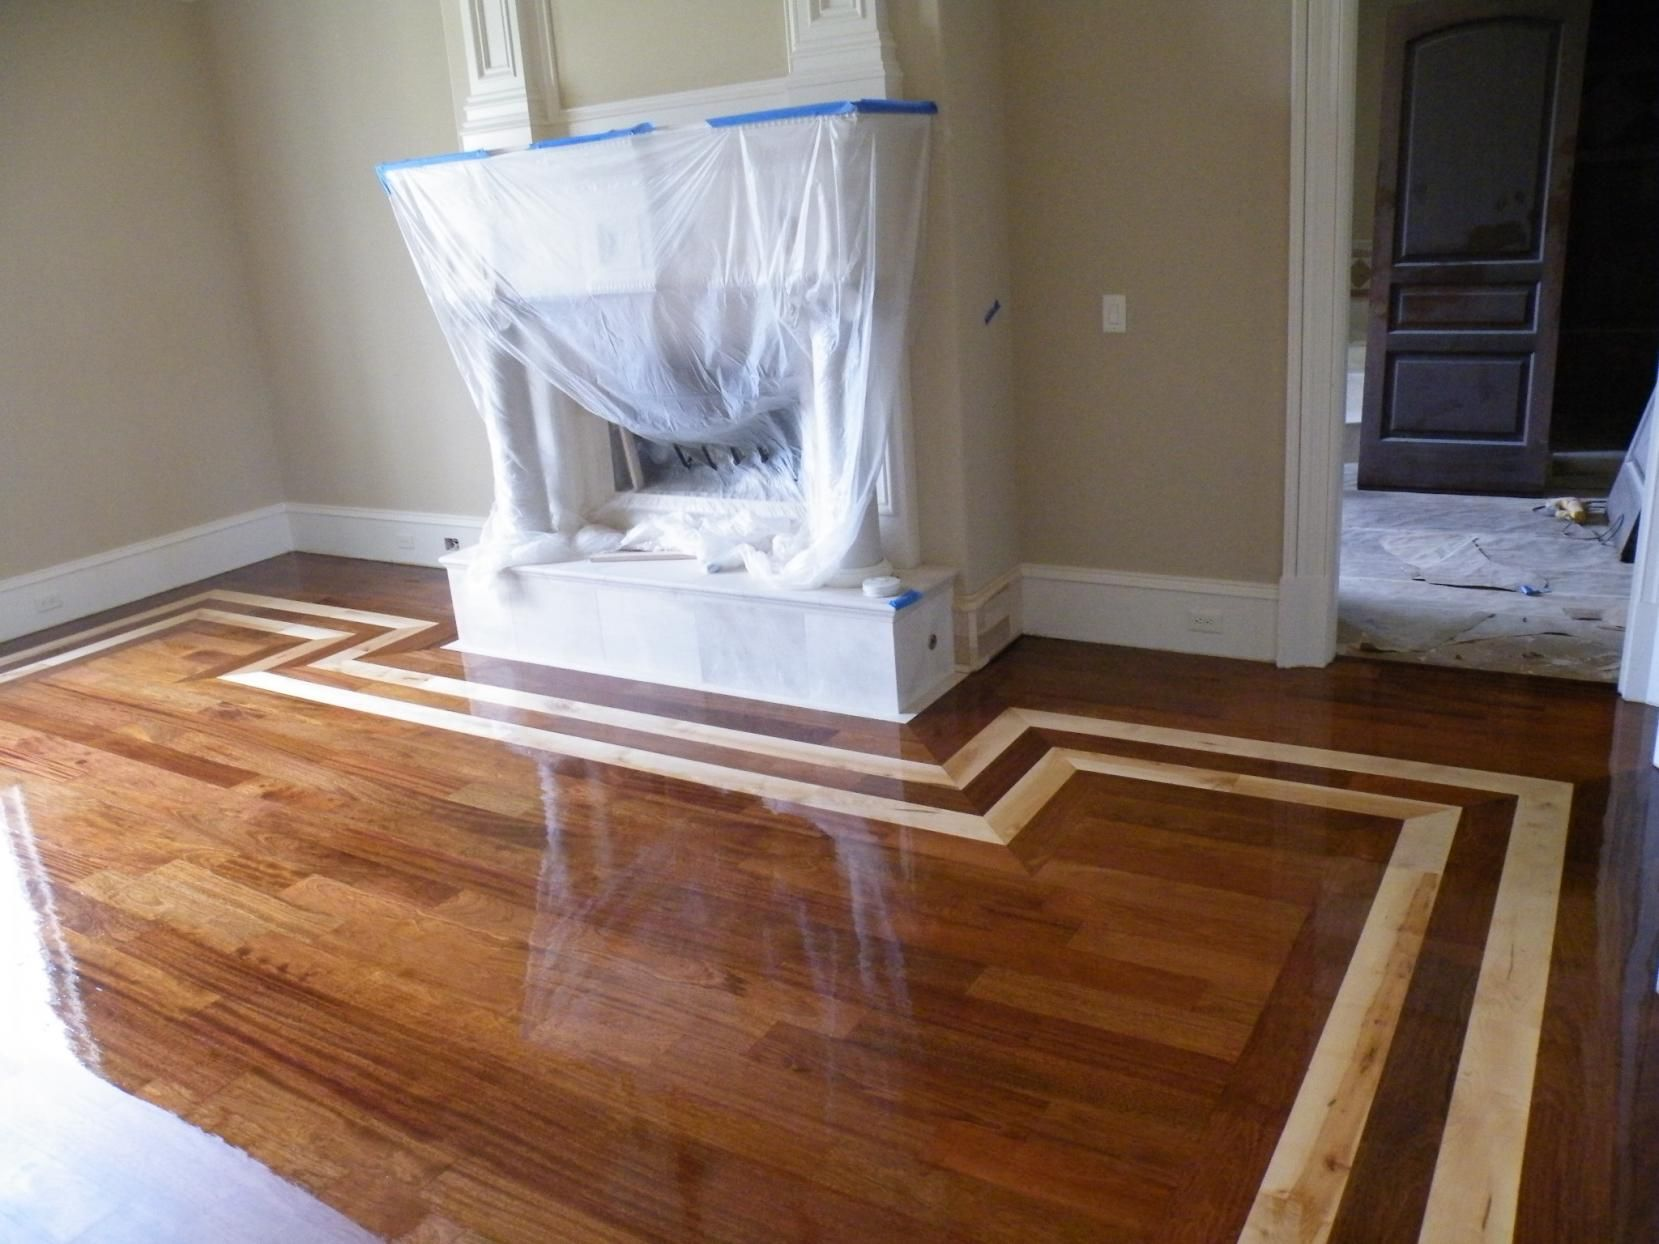 Hardwood Floor Layout wondering how to install solid hardwood flooring follow these guidelines on solid strip and plank flooring installation Fine Faux Hardwood Flooring On Floor With Out The Old Carpet And